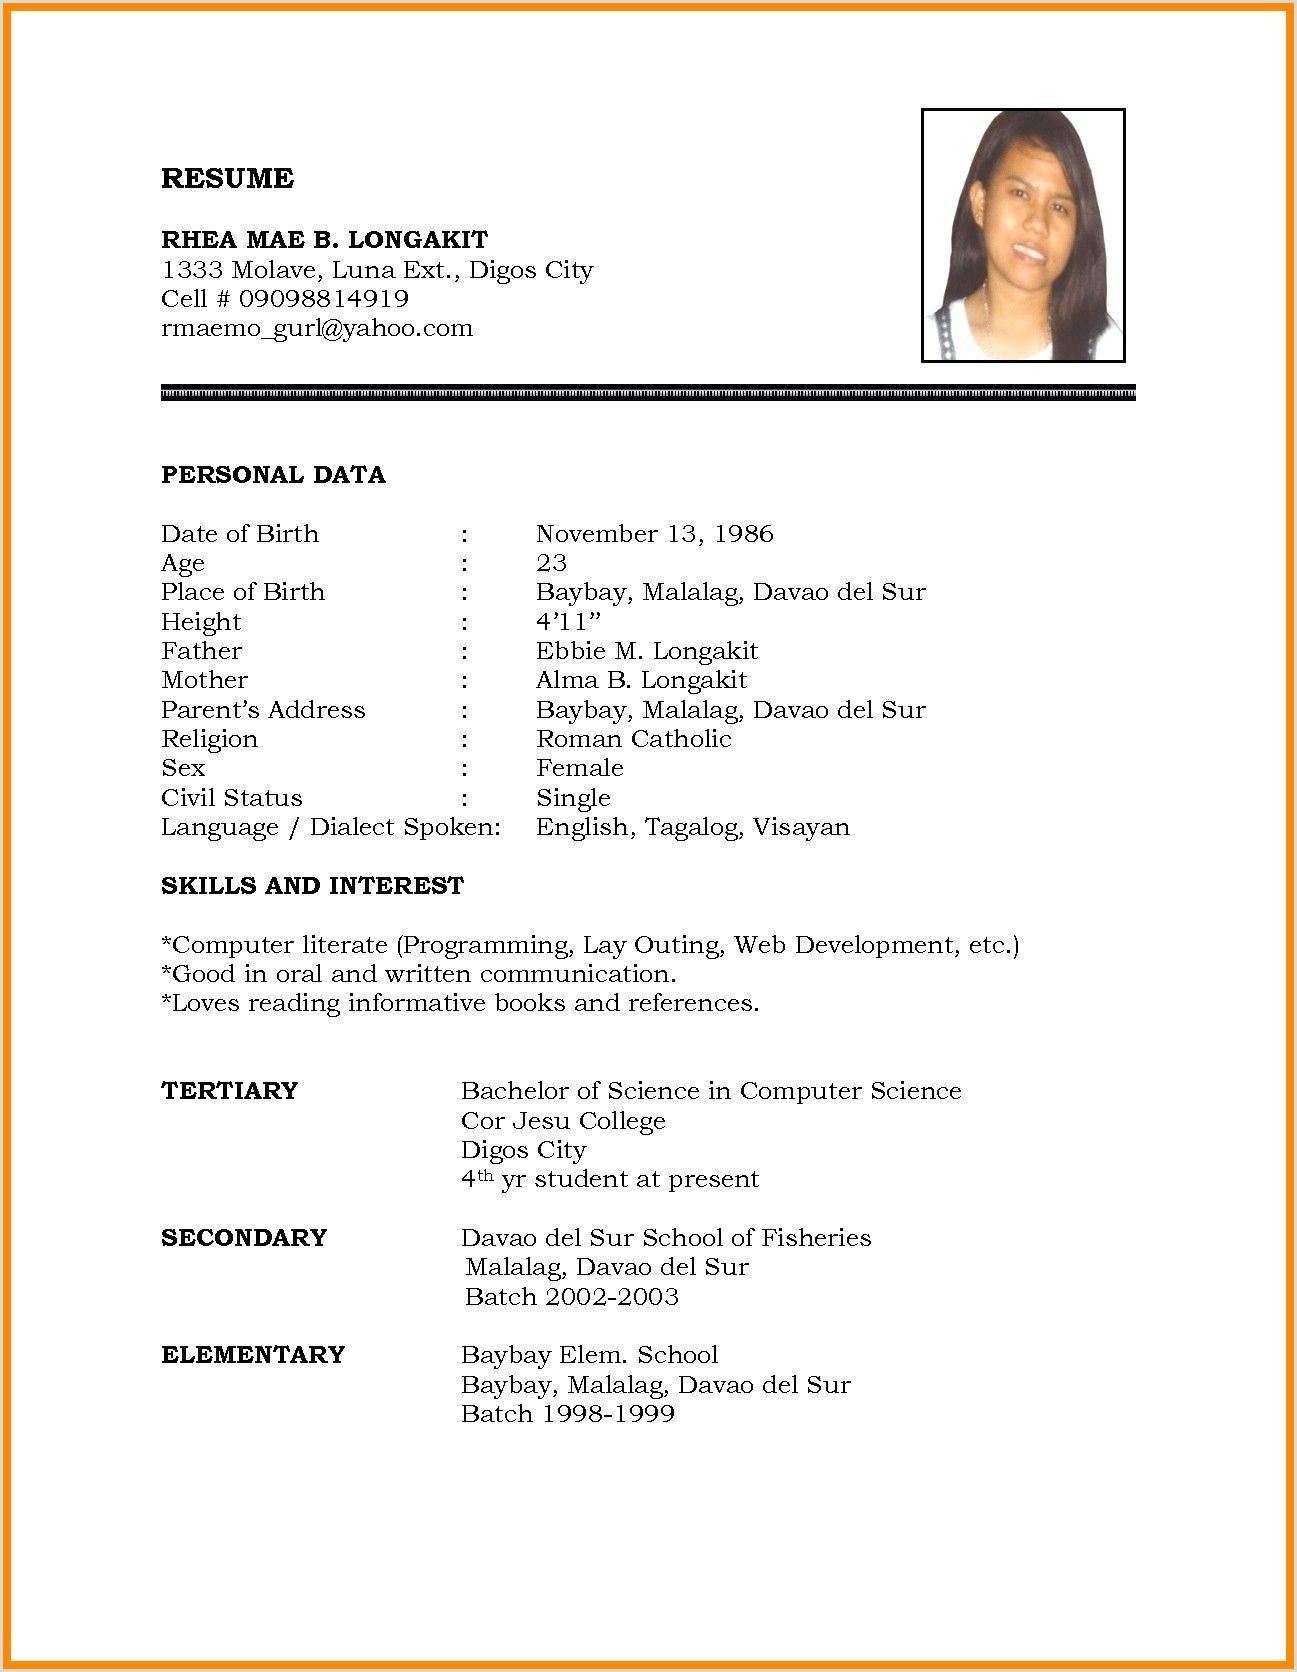 Cv Format For Job Word File Marriage Resume Format Word File Inspirational Biodata 2